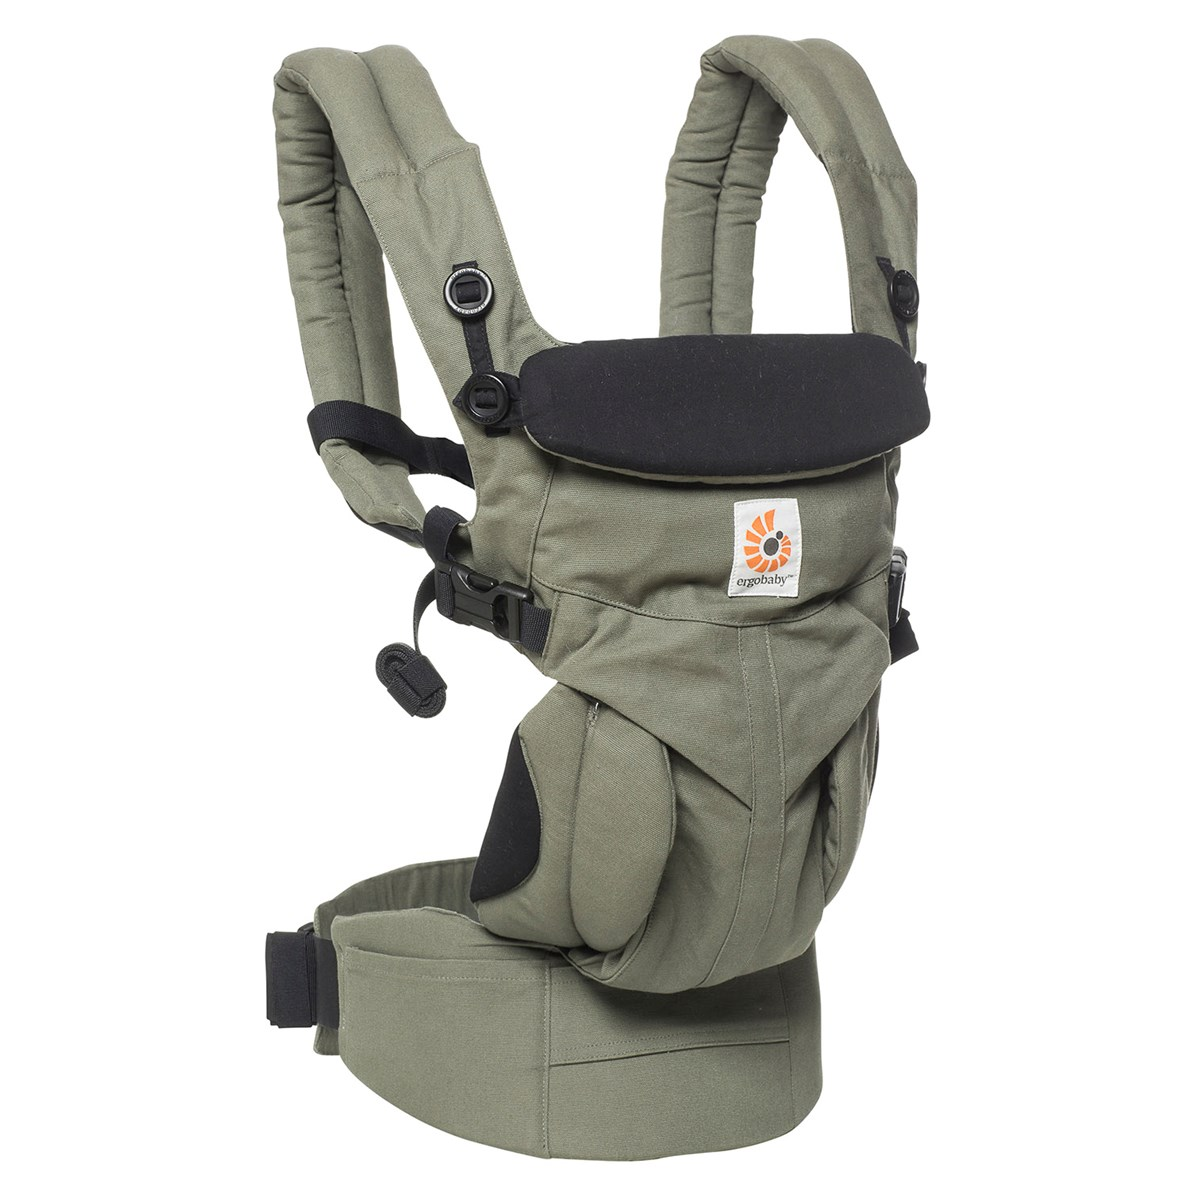 4-Position Omni 360 Khaki Green ERGObaby Baby Carrier Newborn to Toddler Front Back Child Carrier